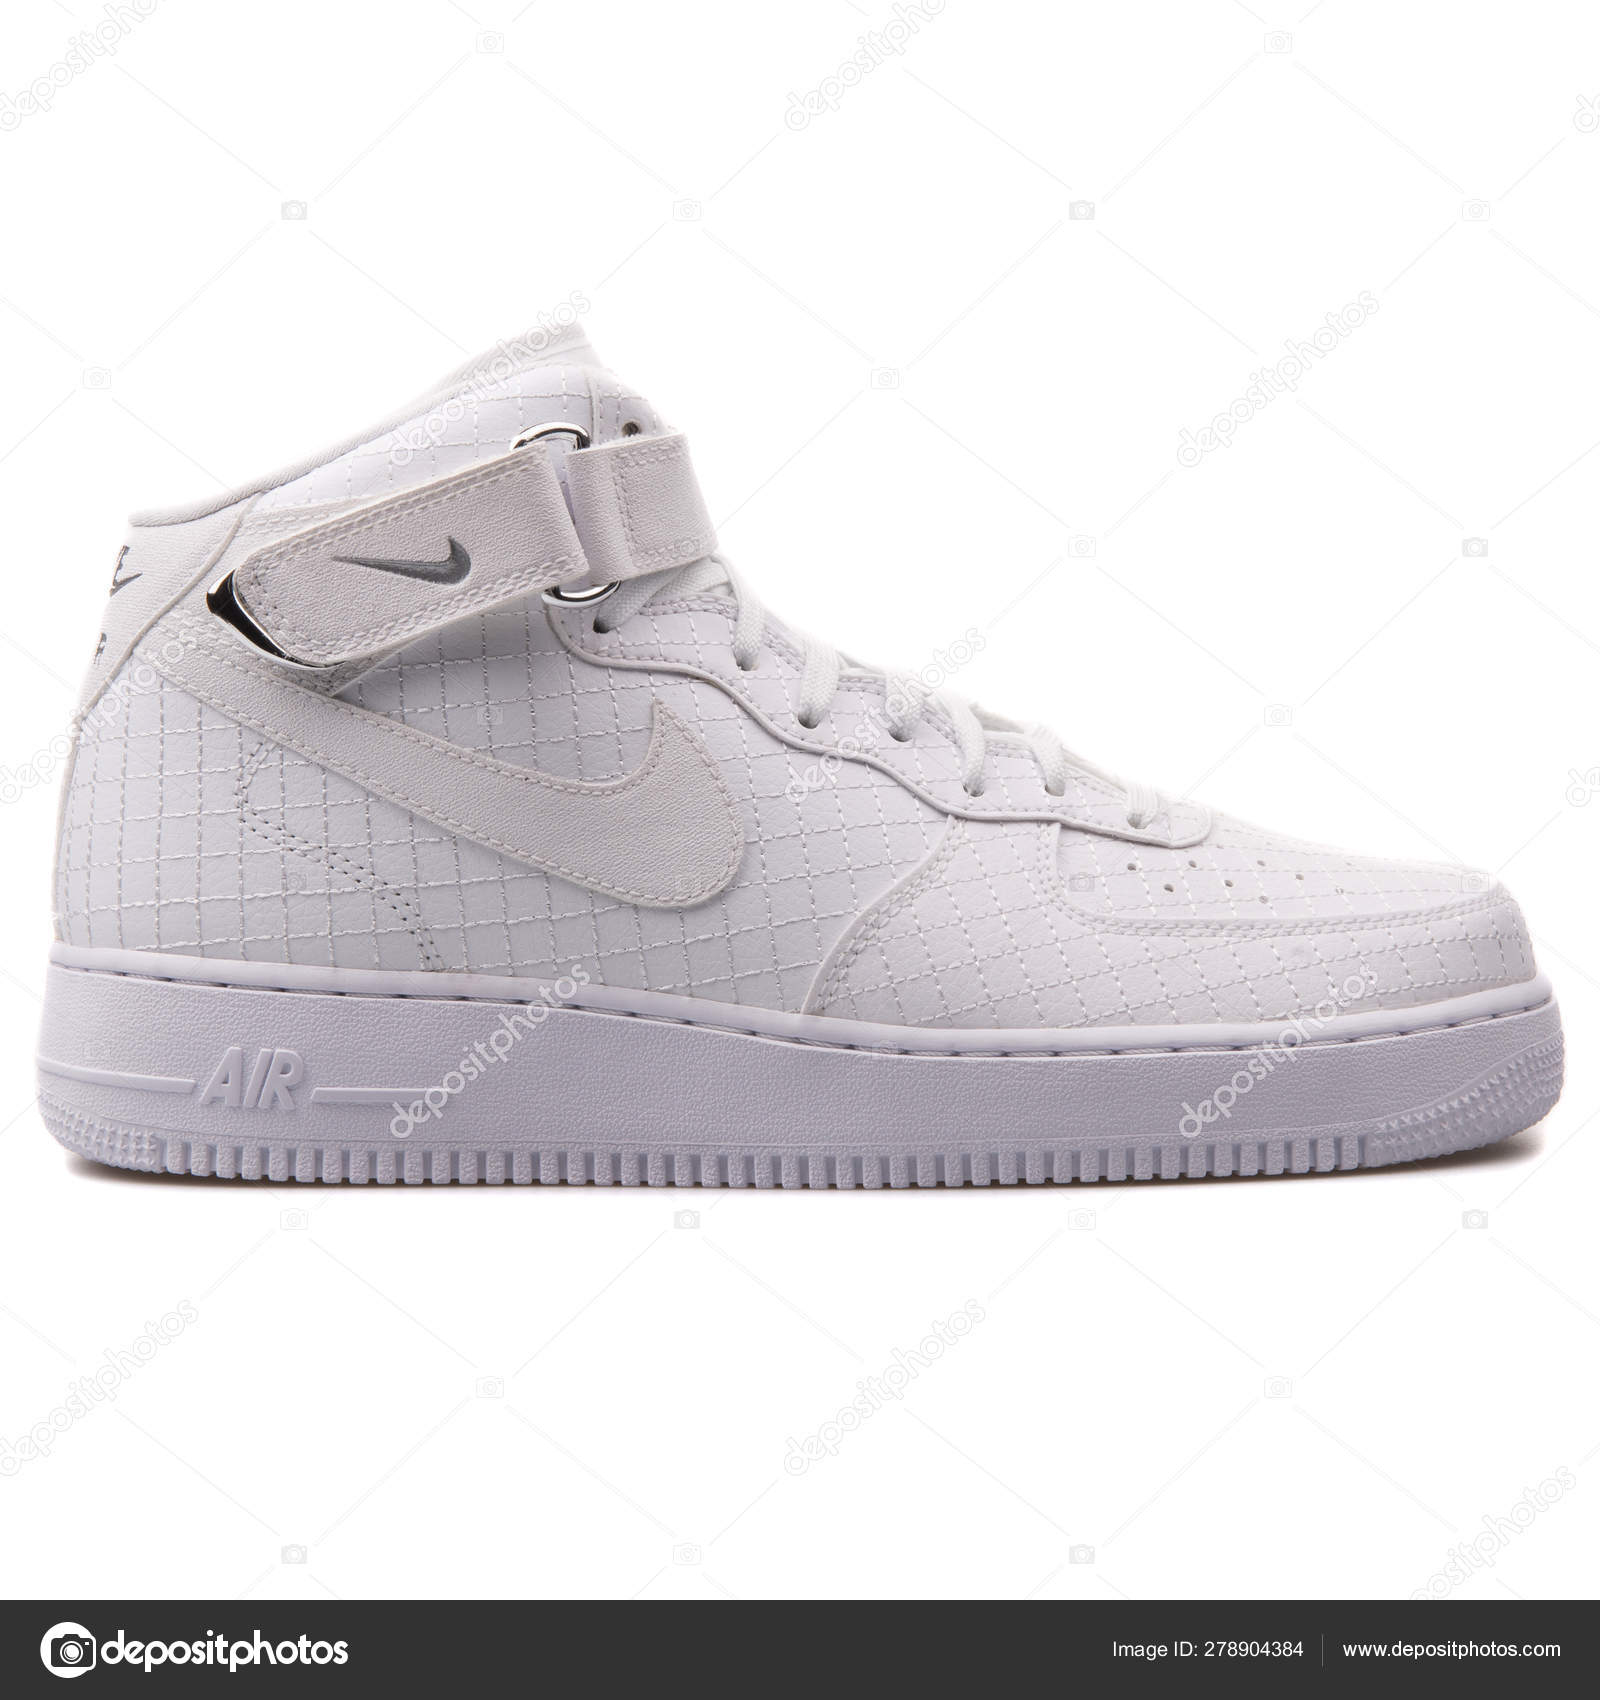 c8d12122 Nike Air Force 1 Mid 07 LV8 white sneaker – Stock Editorial Photo ...